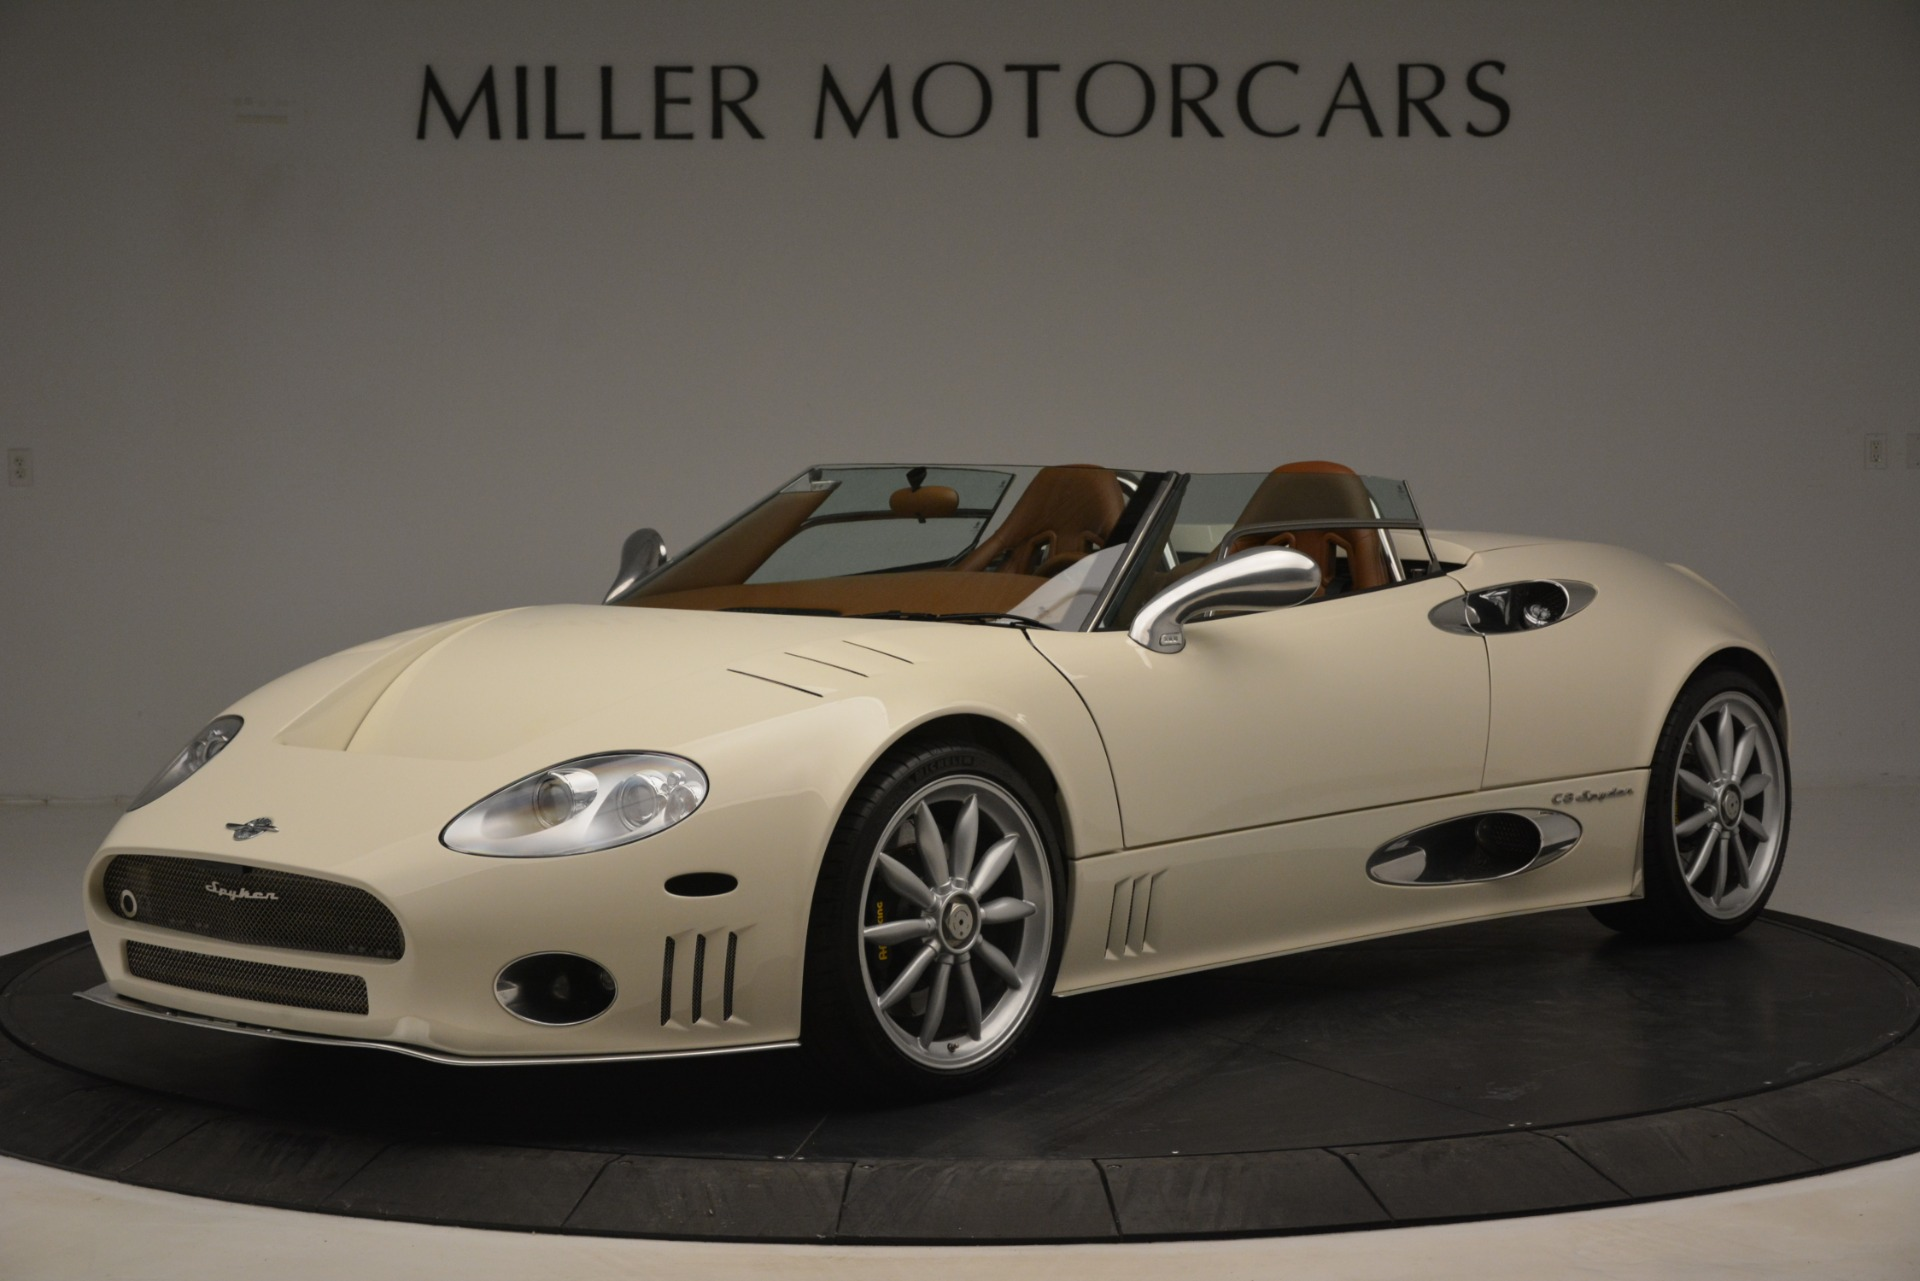 Used 2006 Spyker C8 Spyder  For Sale In Greenwich, CT 1661_p2